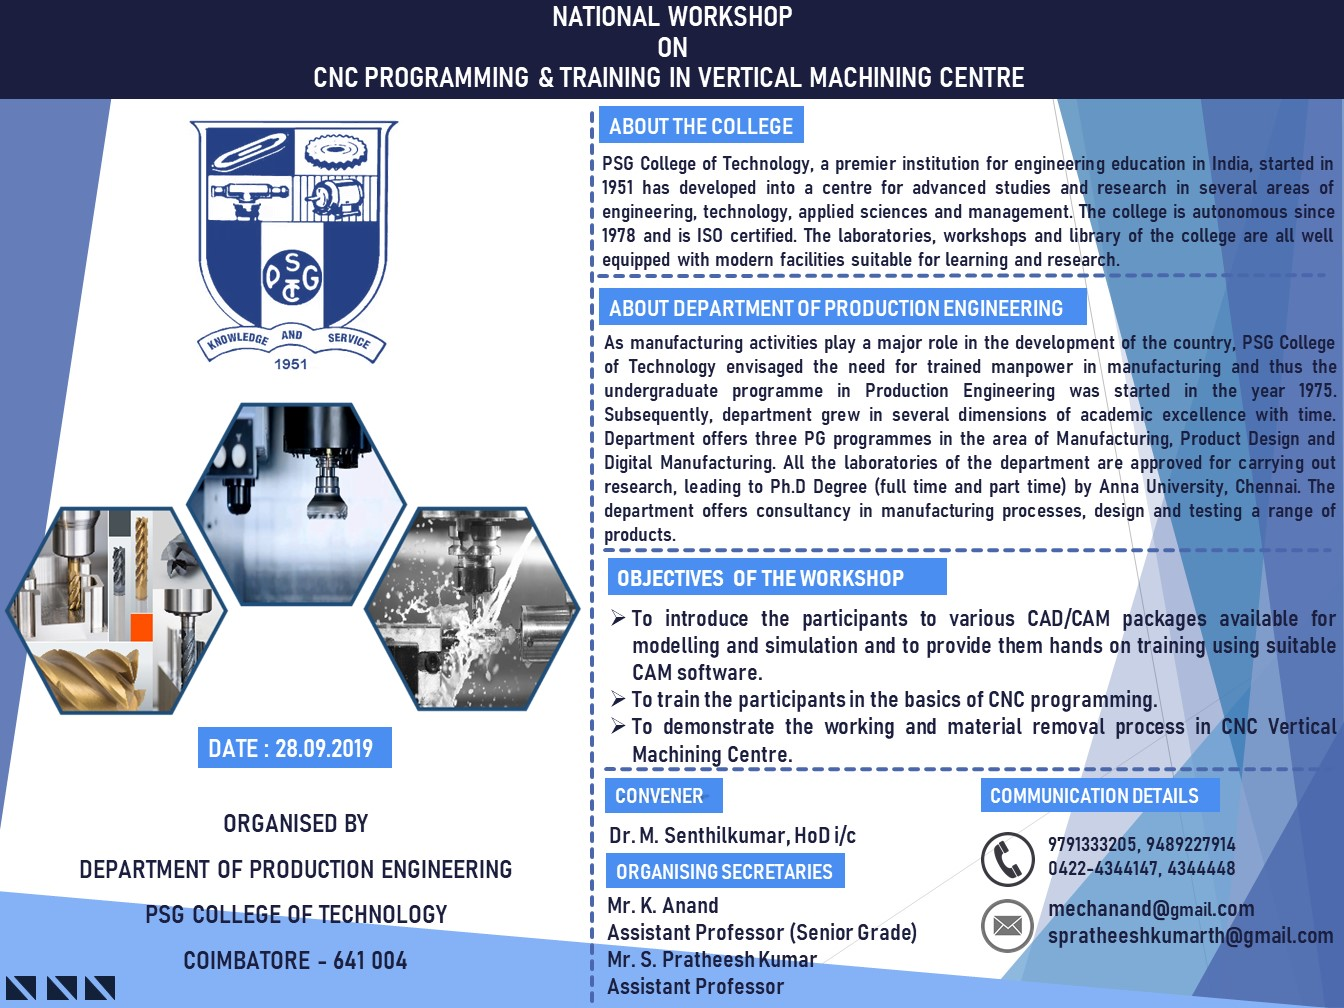 National Workshop on CNC Programming and Training in Vertical Machining Centre 2019